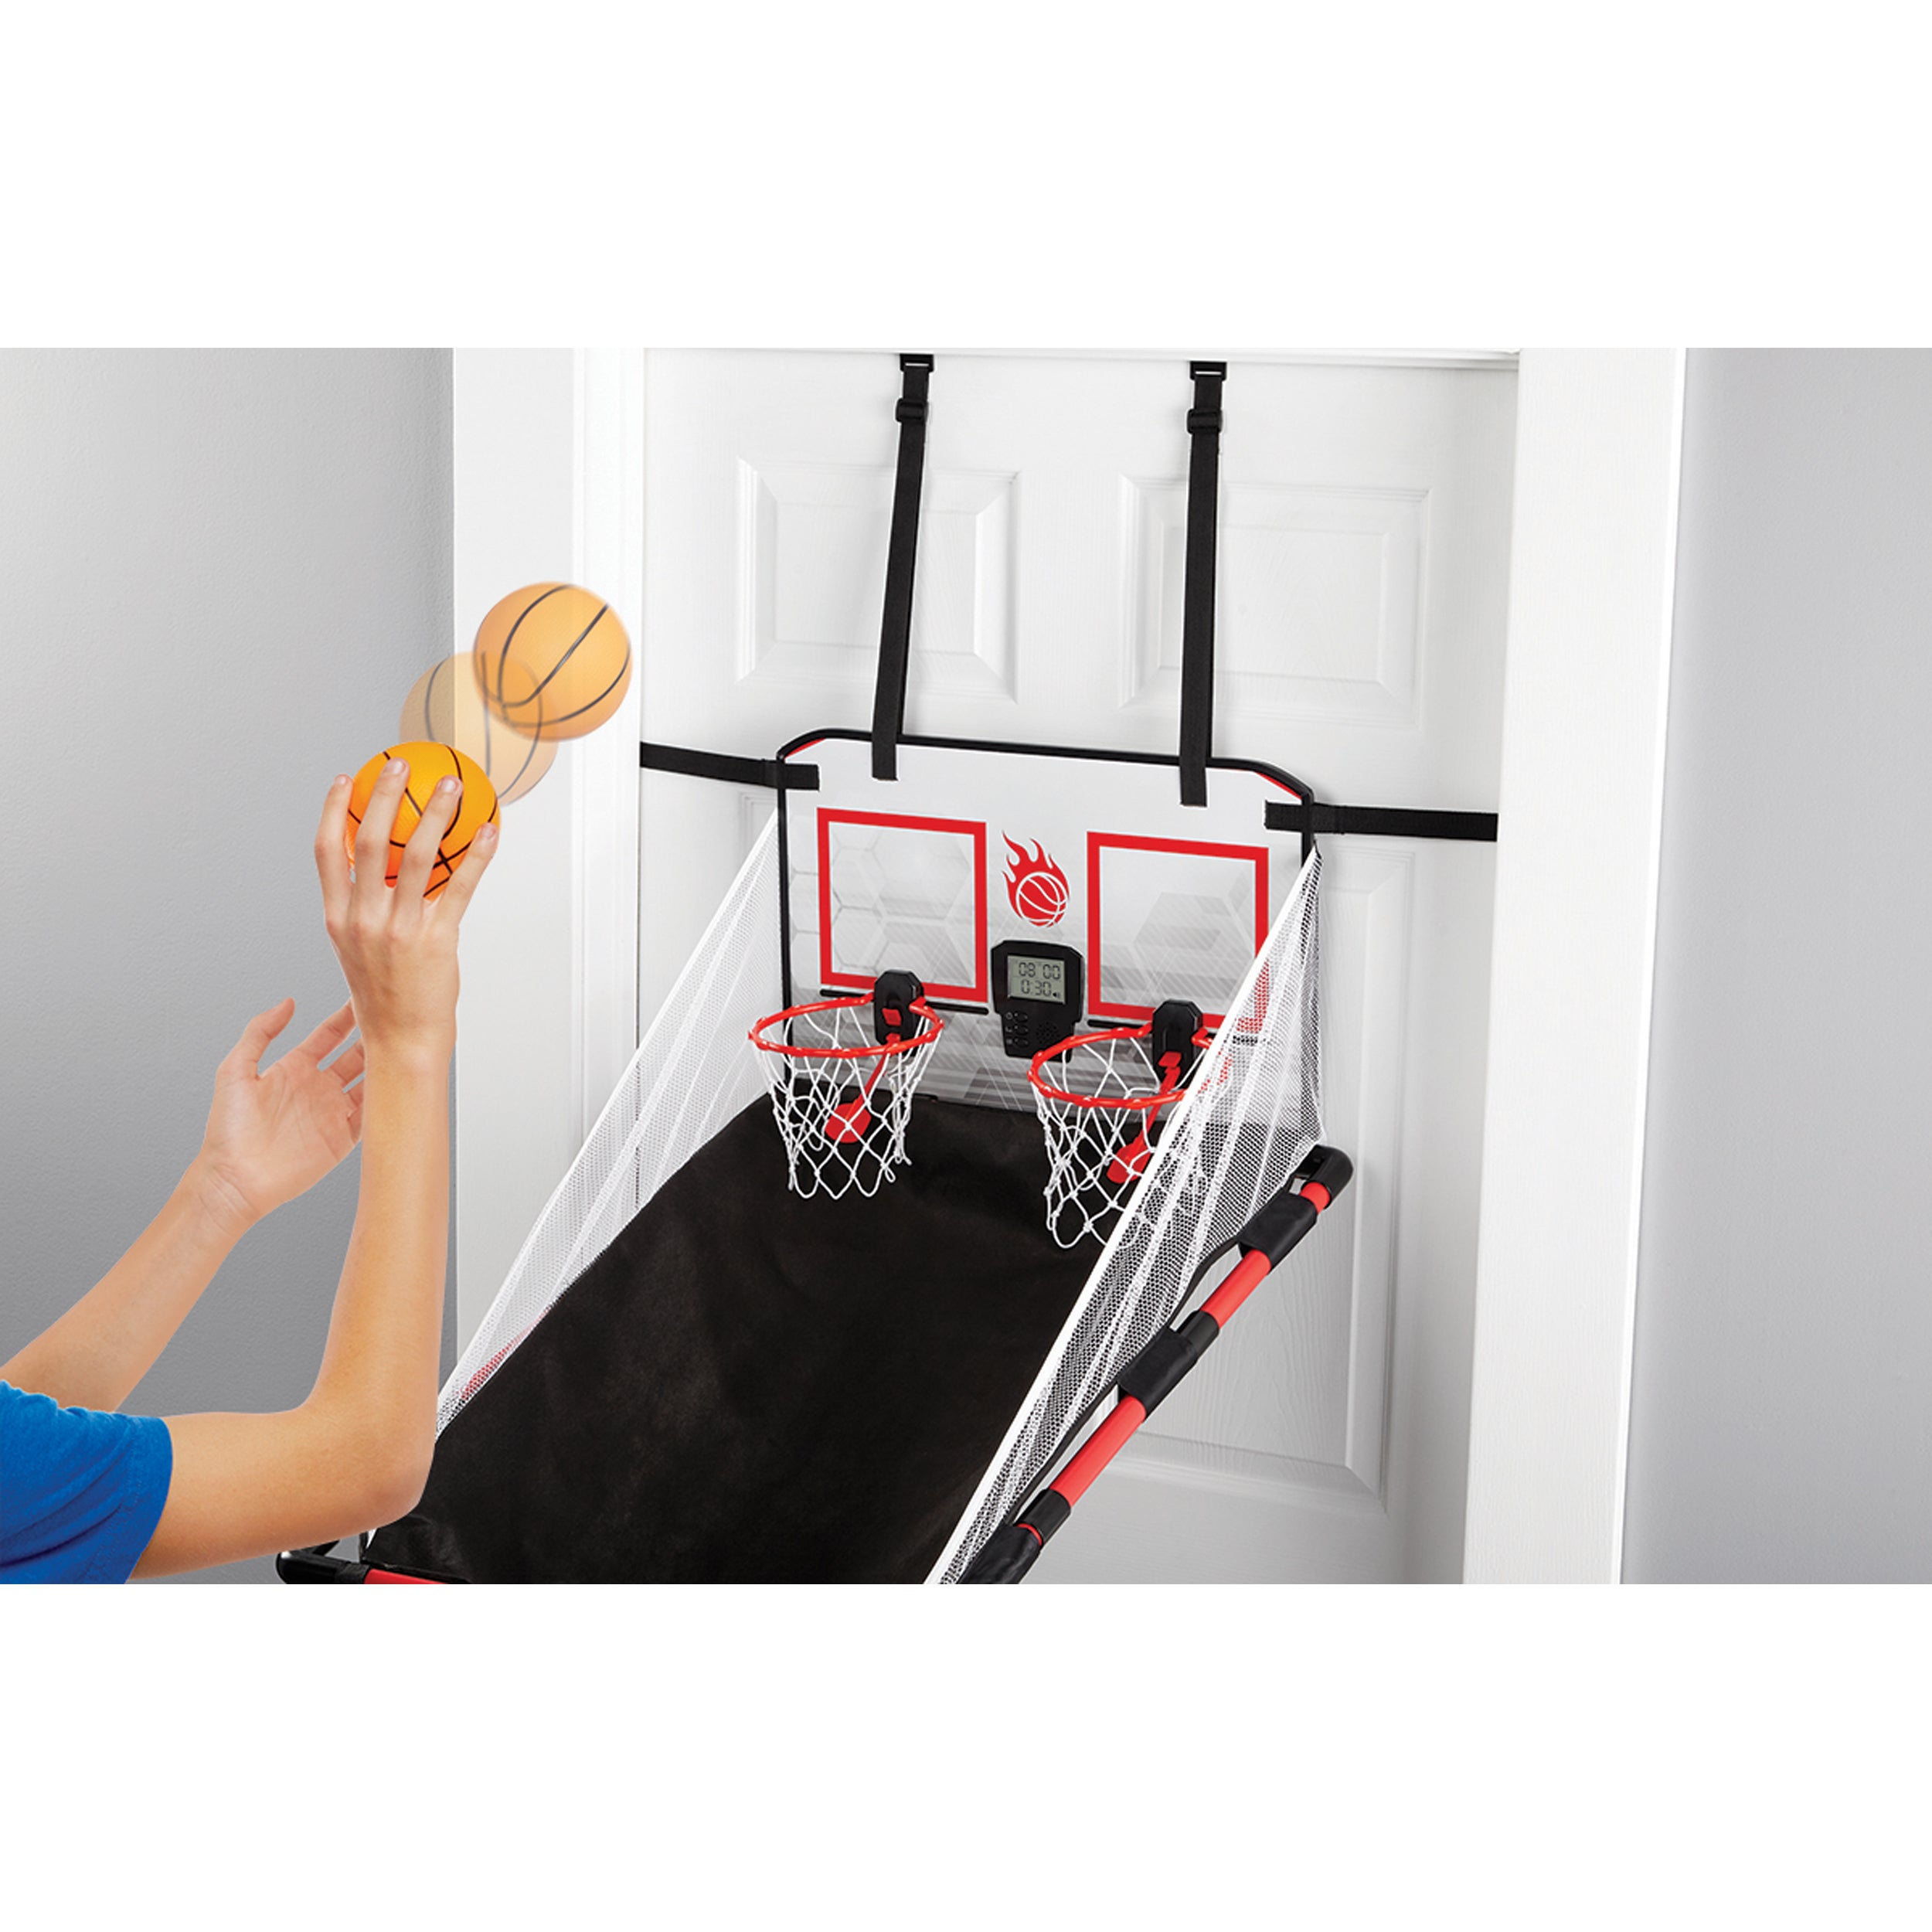 Black Series Over The Door Basketball Game   Free Shipping On Orders Over  $45   Overstock   19782873